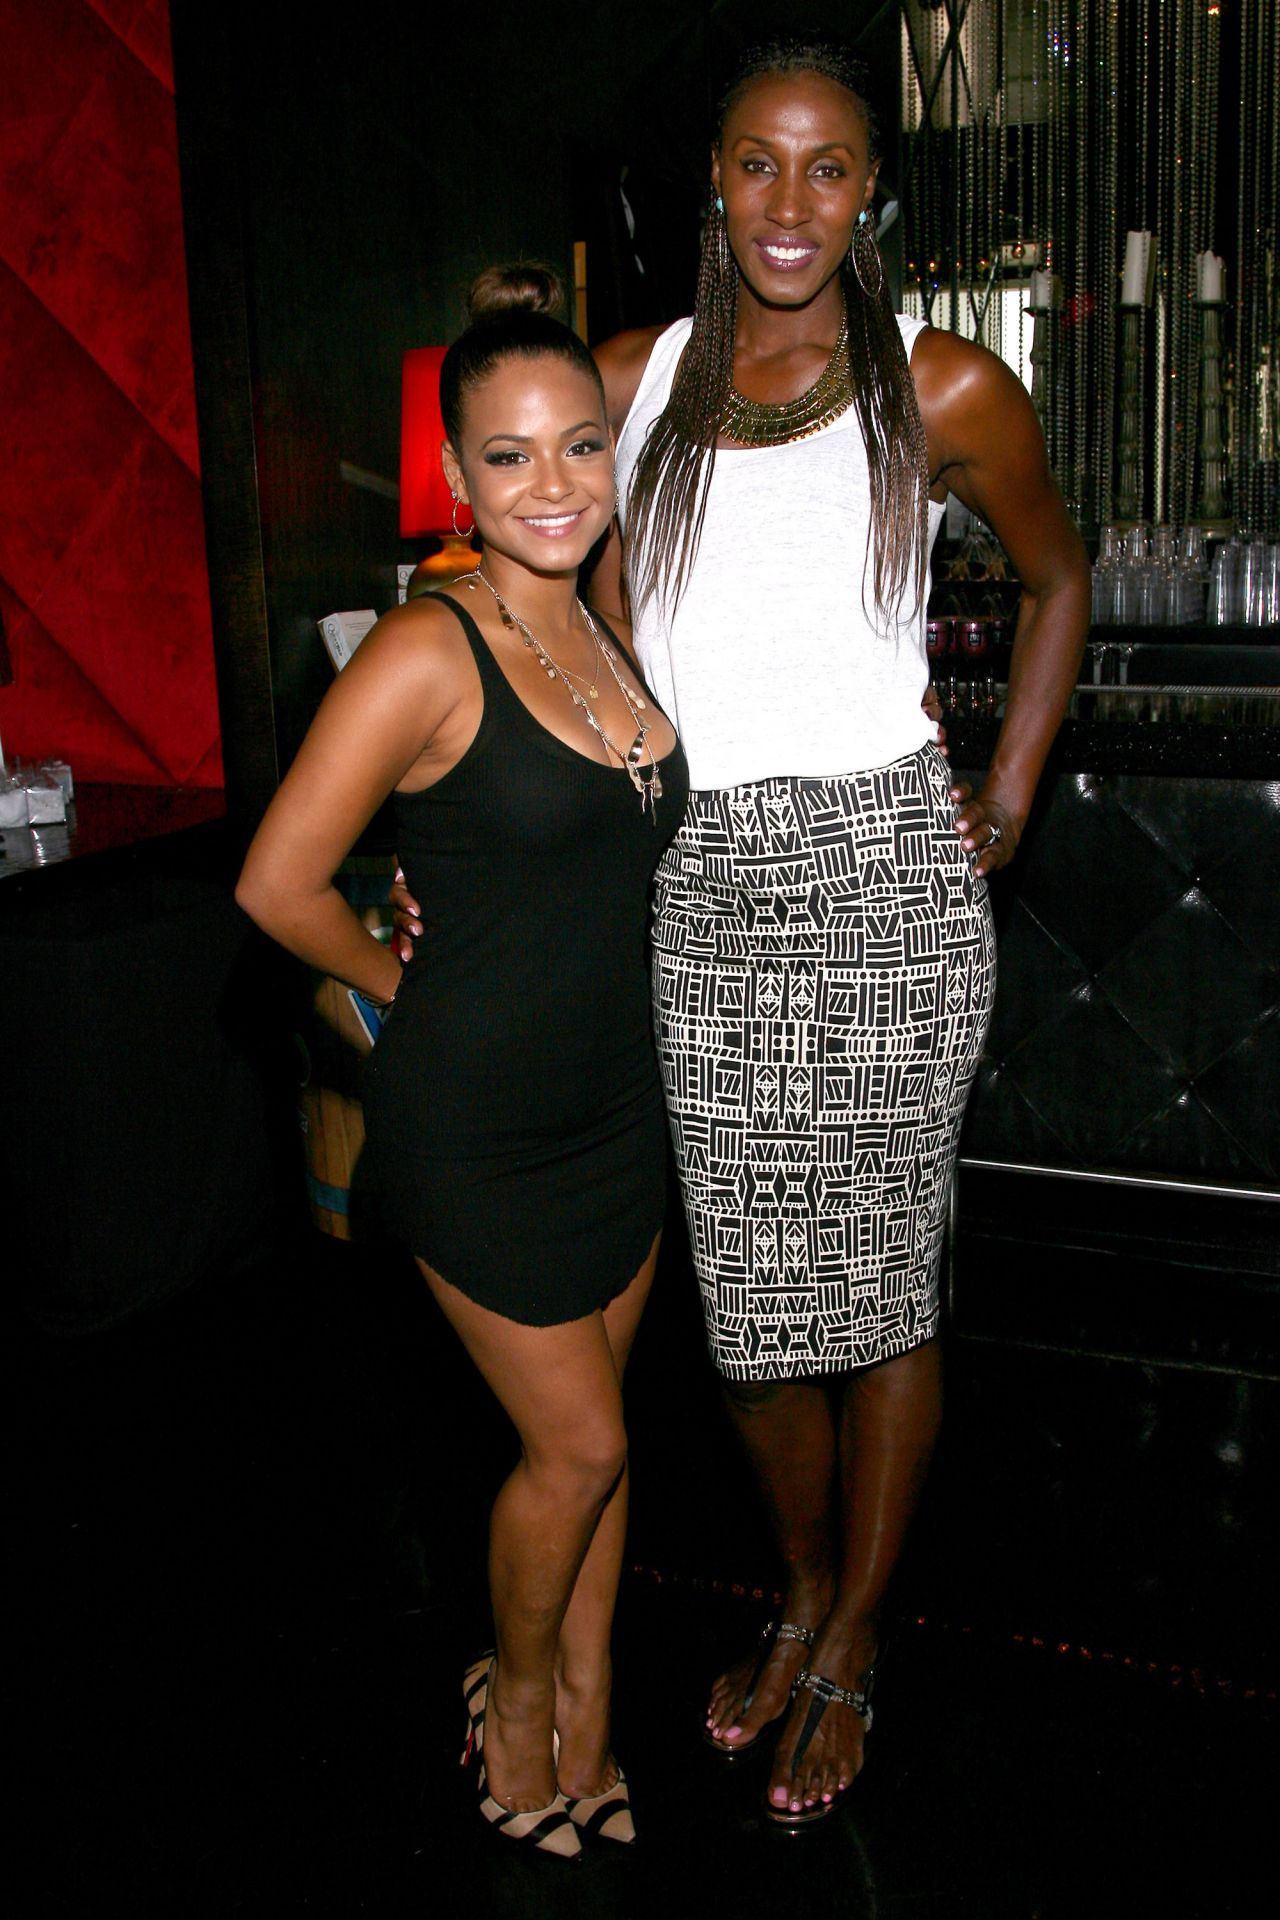 ¿Cuánto mide Lisa Leslie? - Real height Christina-milian-attends-the-gbk-luxury-sports-lounge-in-hollywood-july-2014_12